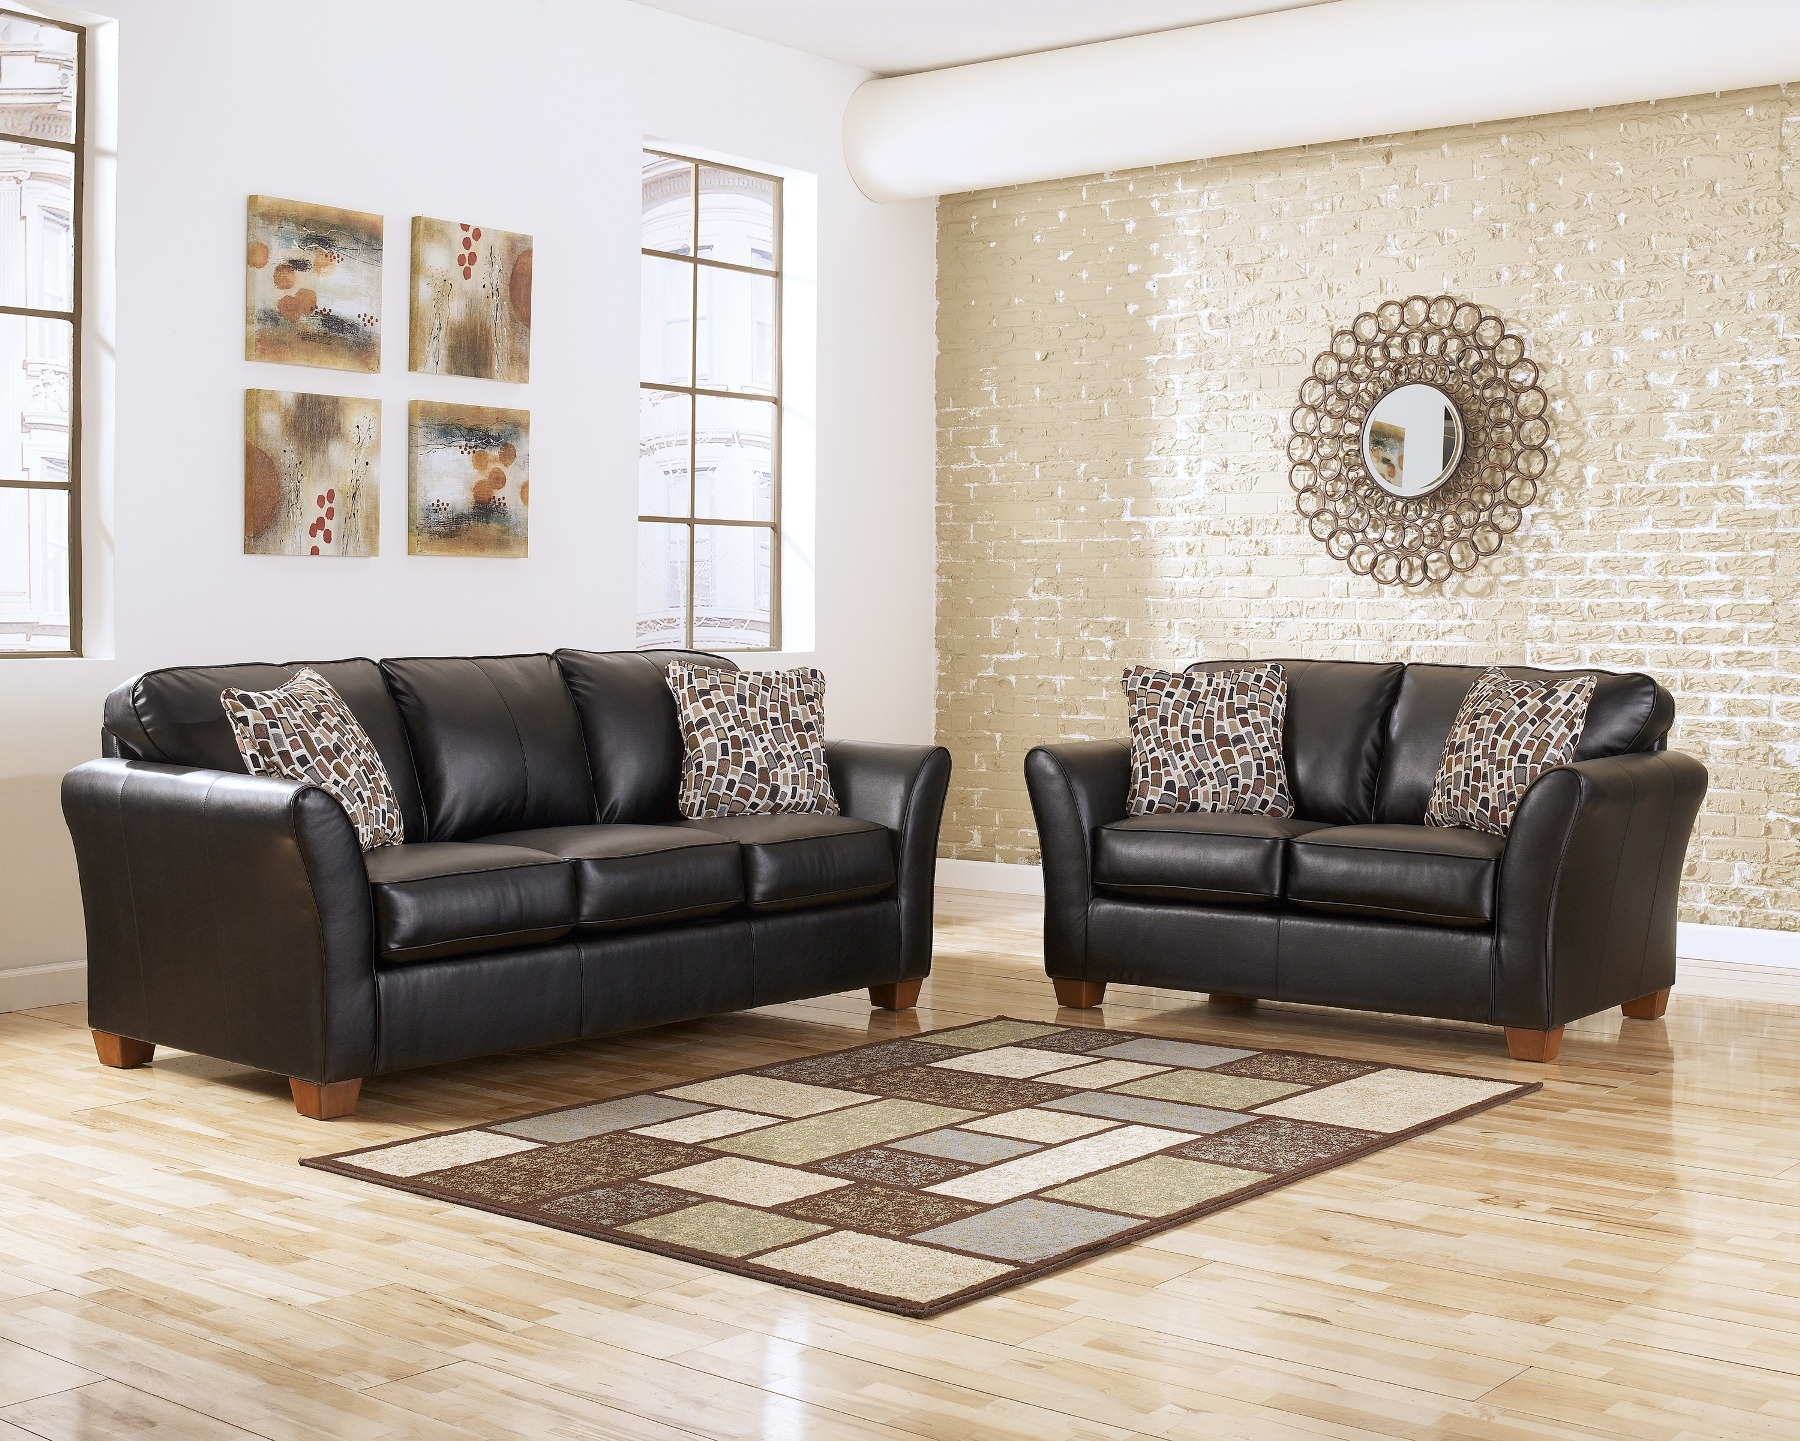 Sofas Center Sofa Sleeper Atg Lots Furniture Sofas For Sale And Intended For Big Lots Sofa Sleeper (Image 14 of 15)